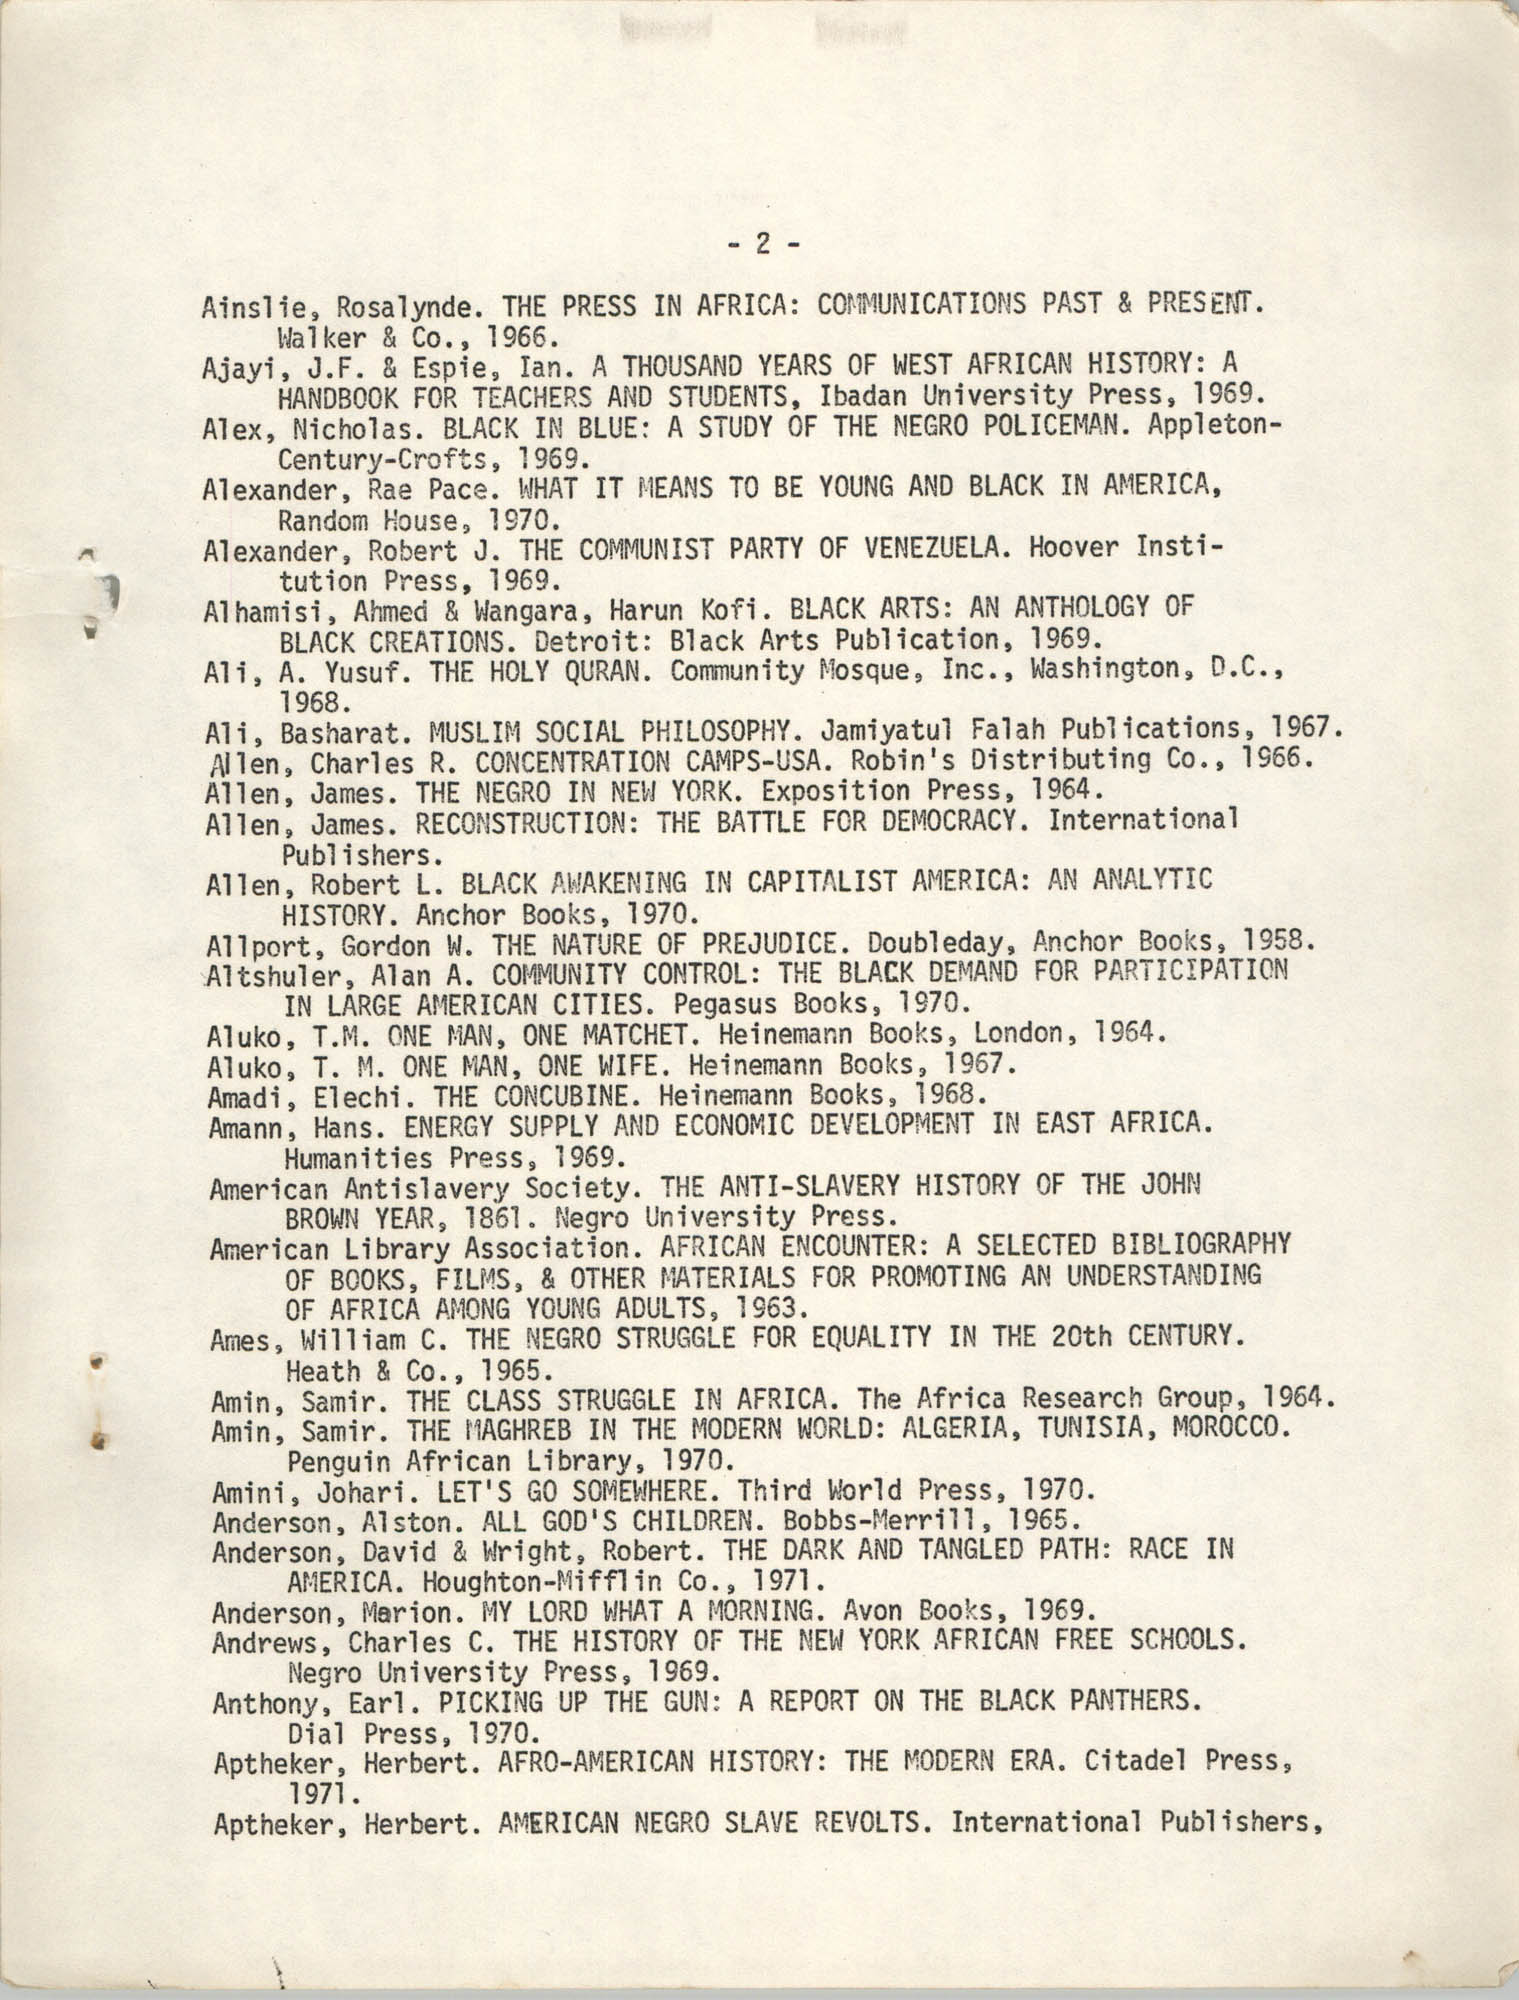 Howard University Department of Afro-American Studies Reading Materials, Page 2